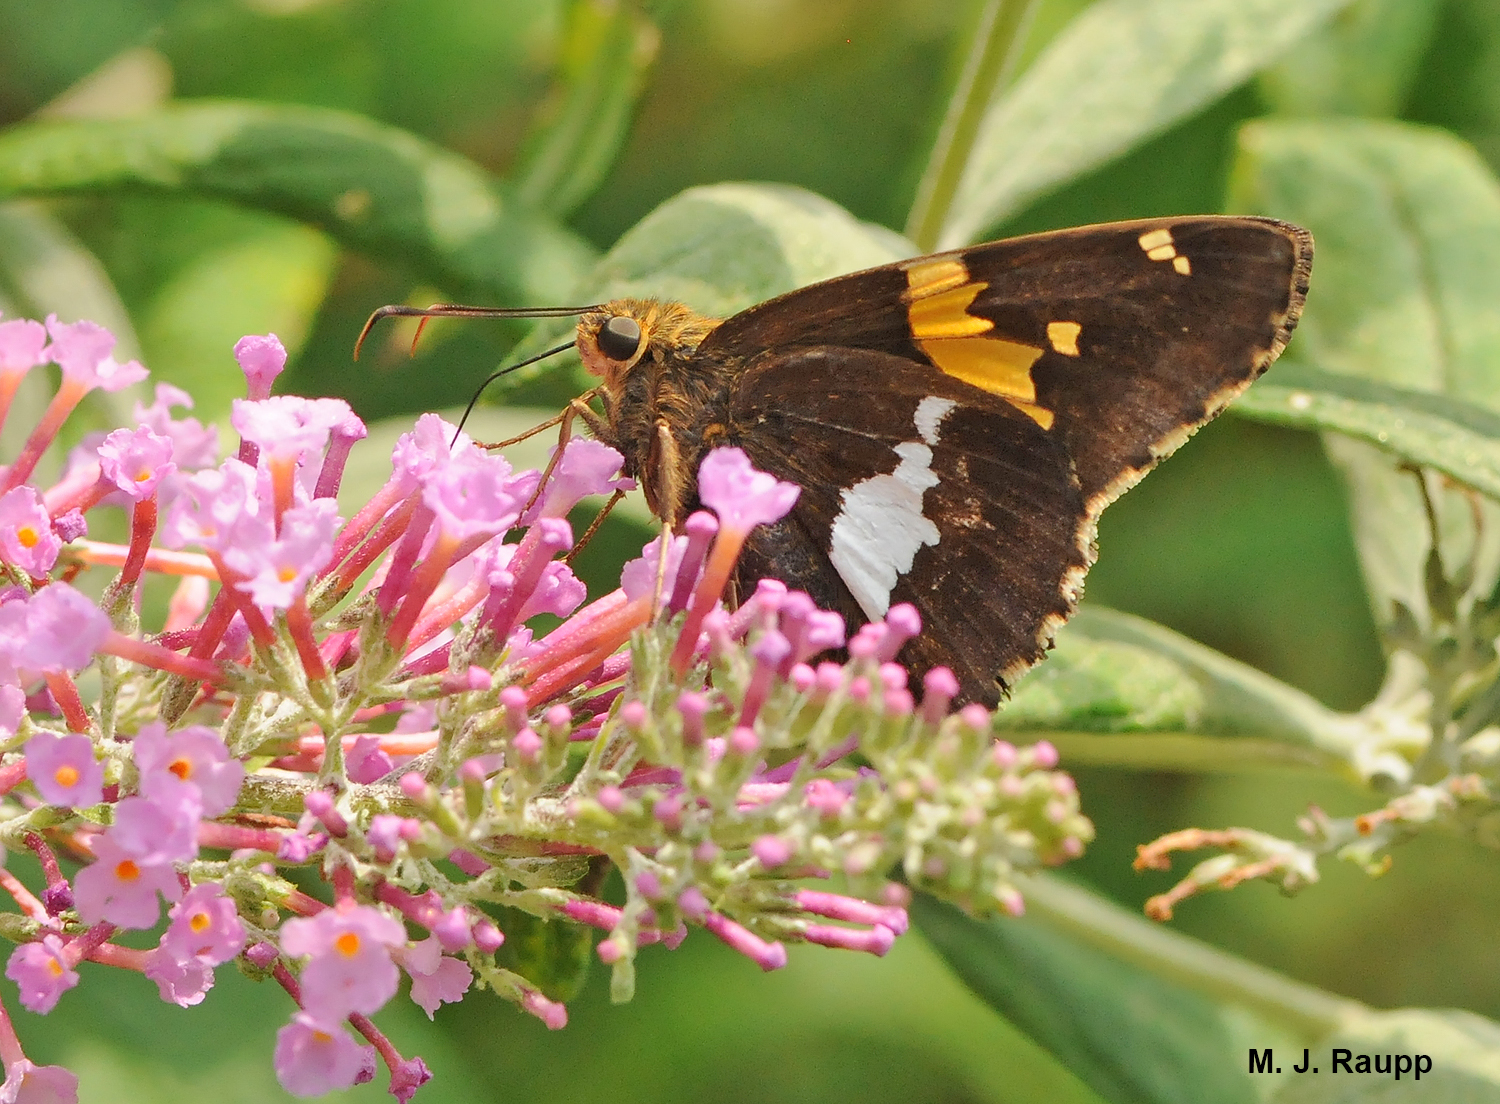 Silver spotted skippers are one of most rambunctious pollinators in the garden.